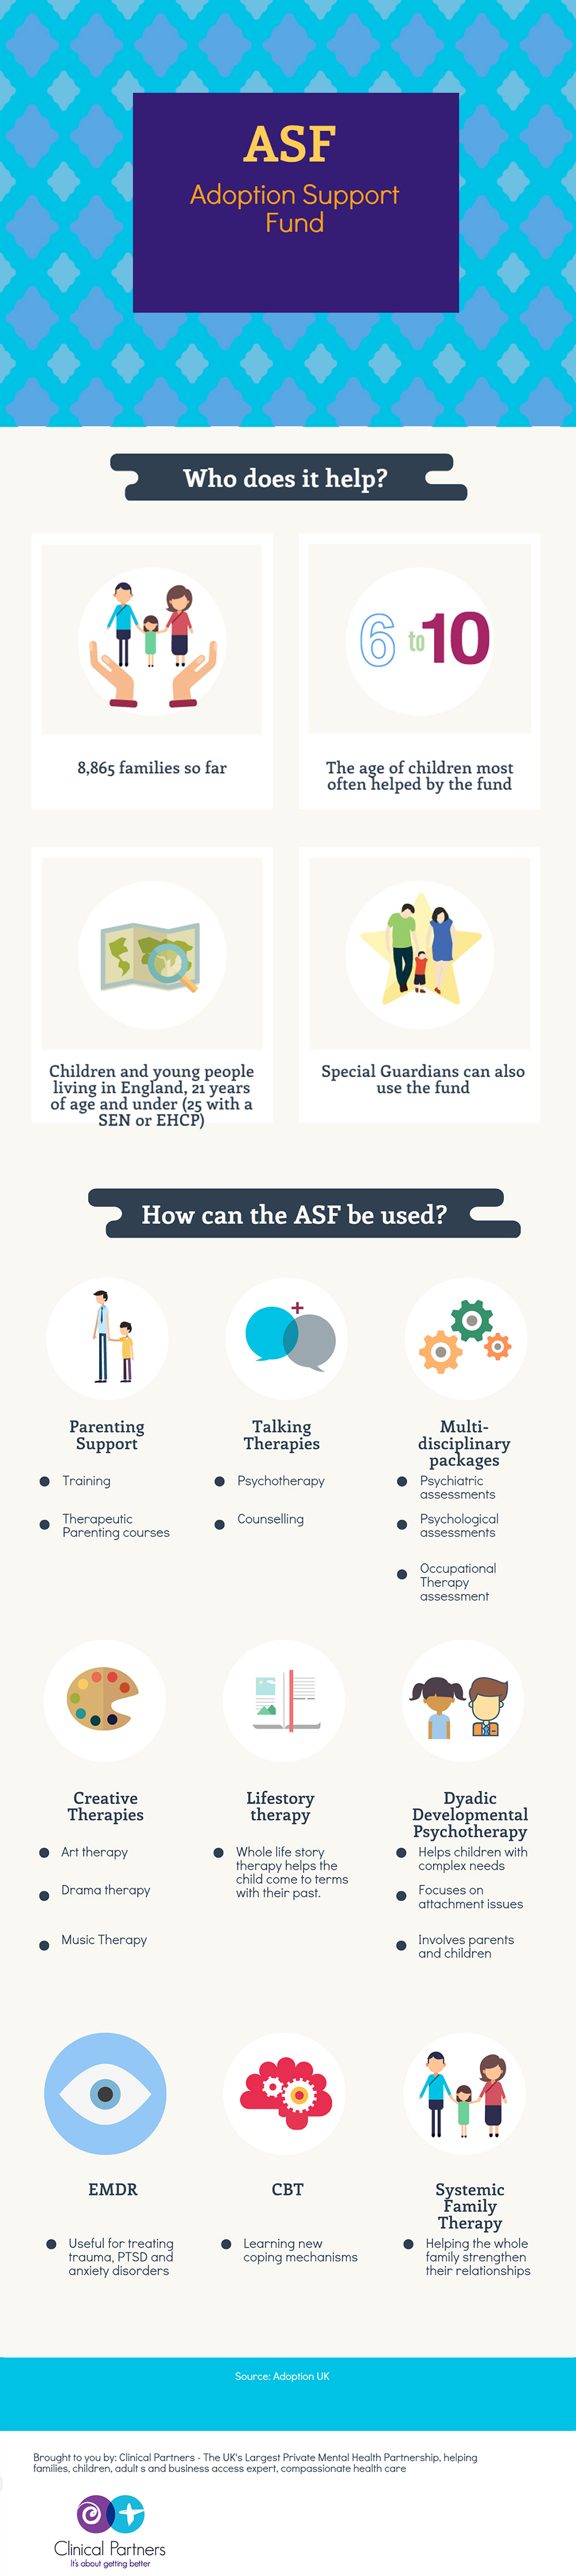 adoption support fund infographic